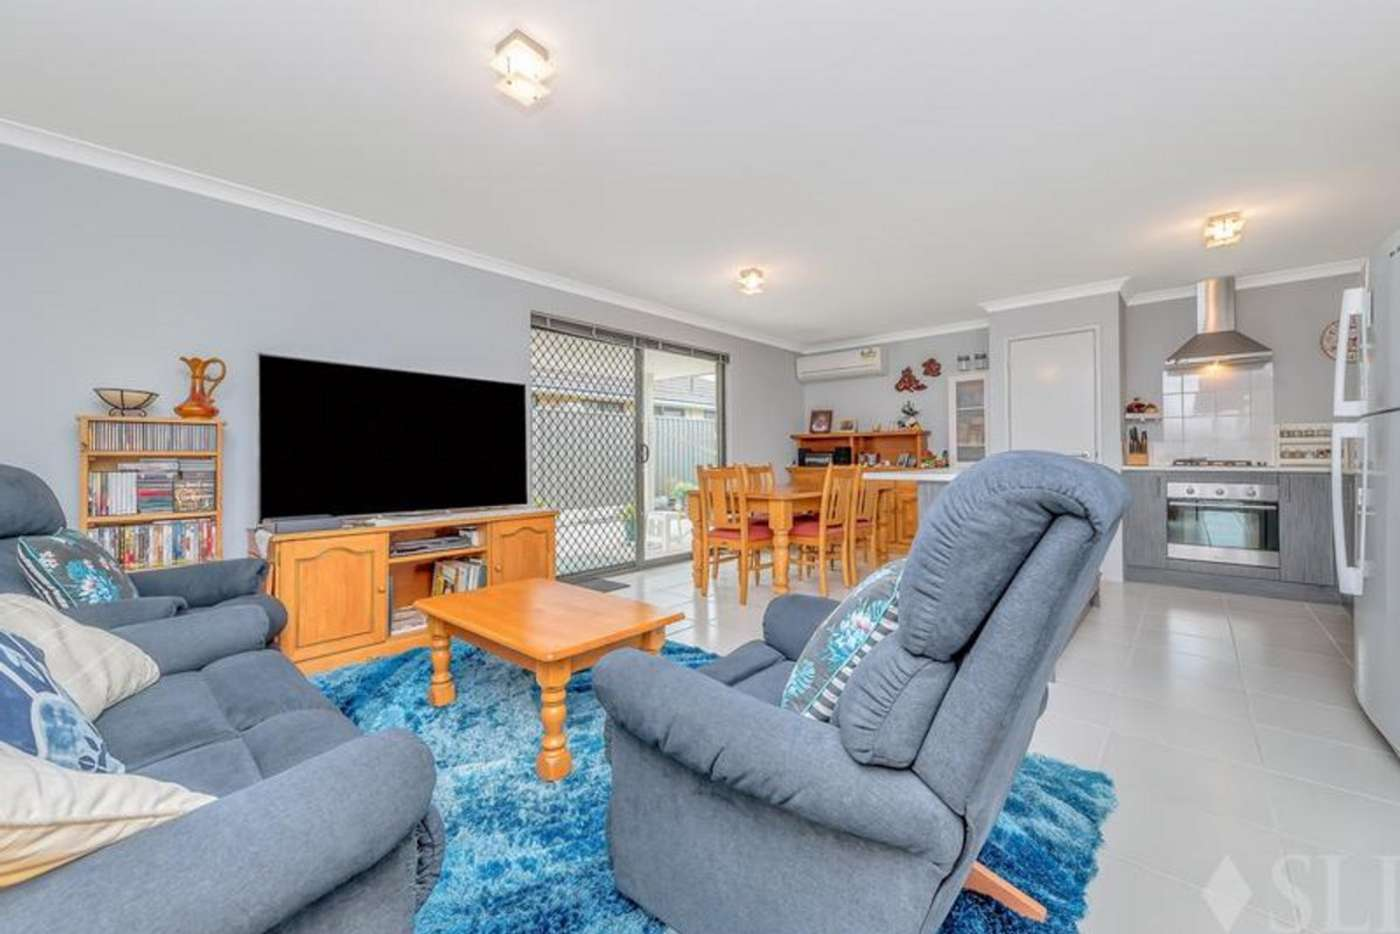 Main view of Homely house listing, 45 Ludlow Loop, Pinjarra WA 6208